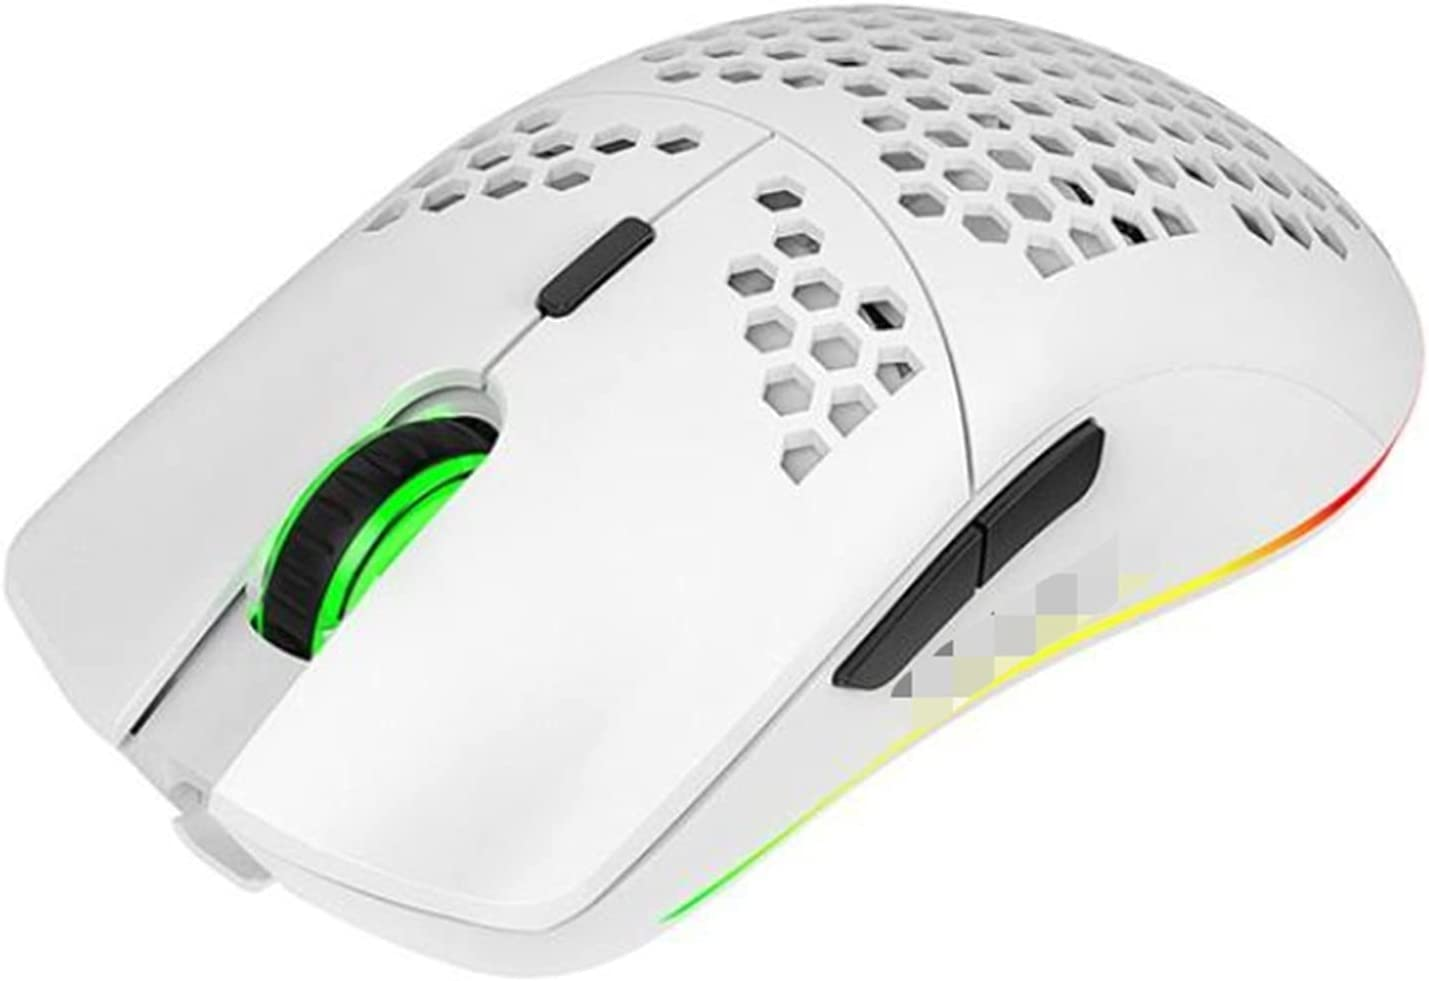 Gcsheng T66 2.4GHz Wireless Optical Game Gamer Mouse Wireles Max 79% OFF New Super popular specialty store